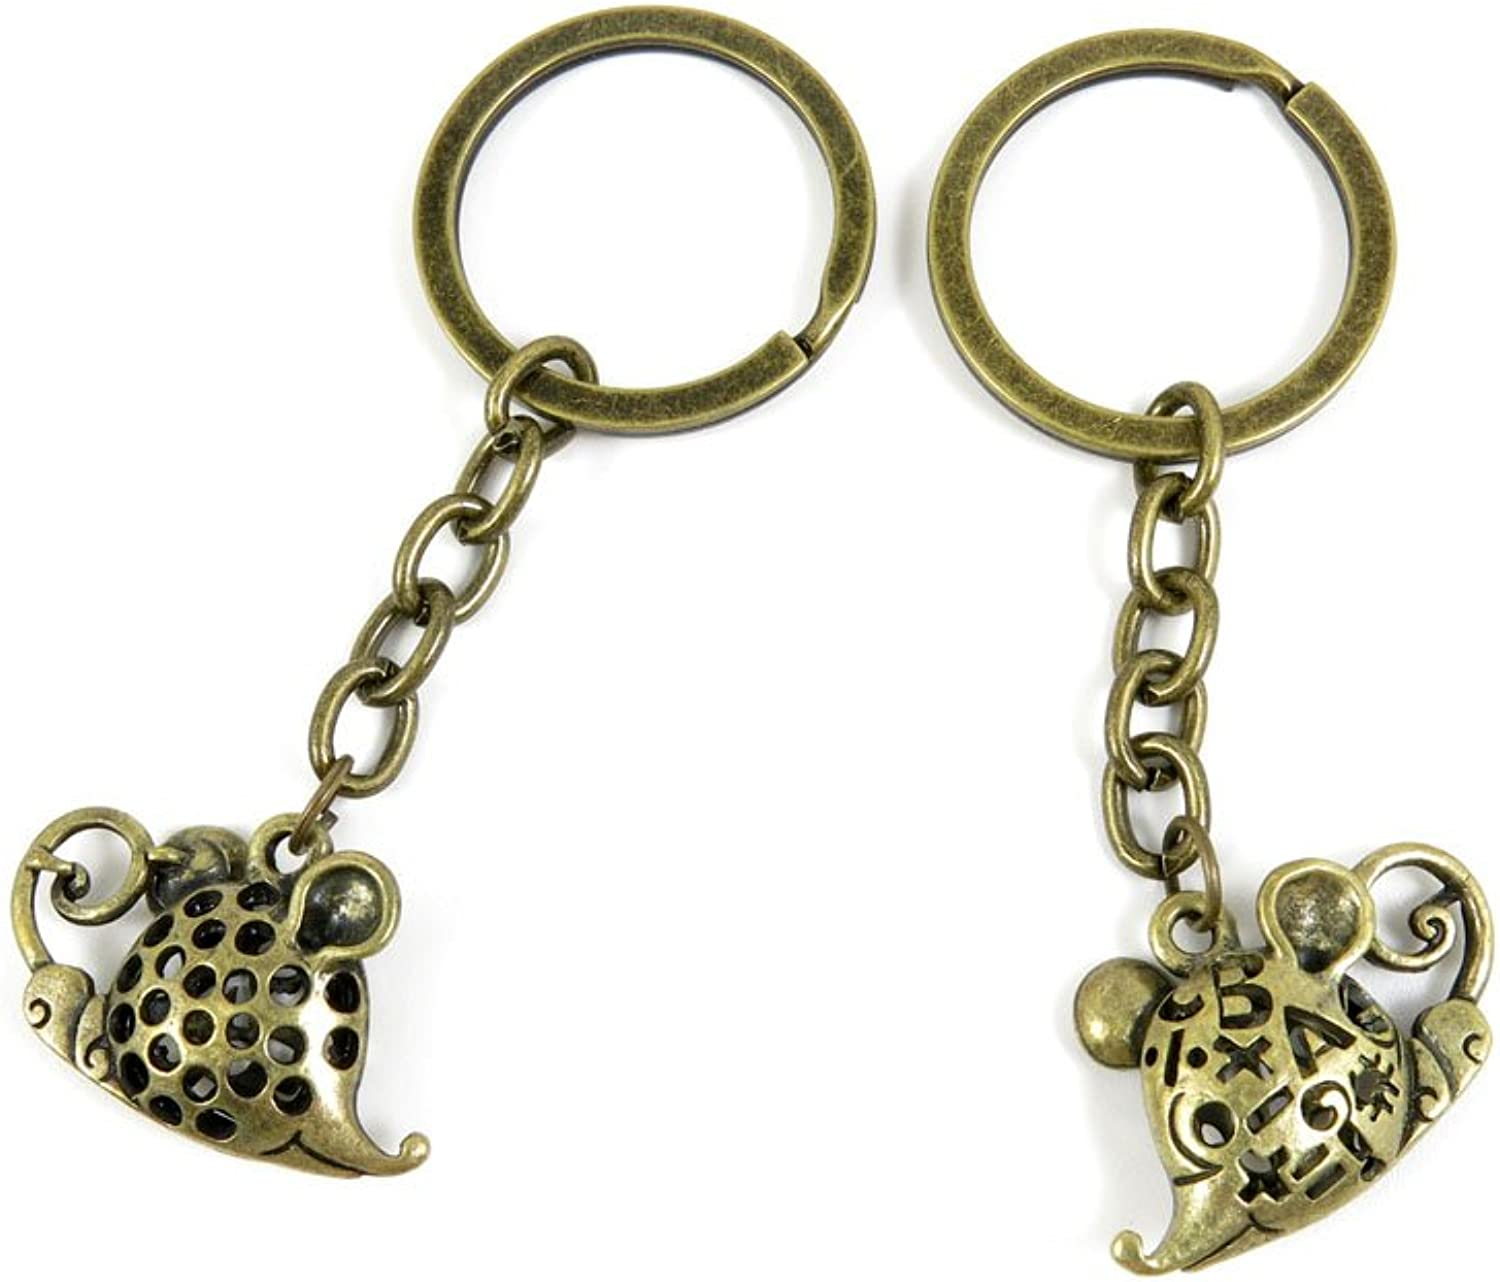 30 PCS Keyrings Keychains Key Ring Chains Tags Jewelry Findings Clasps Buckles Supplies Z0JW8 Mouse Rat